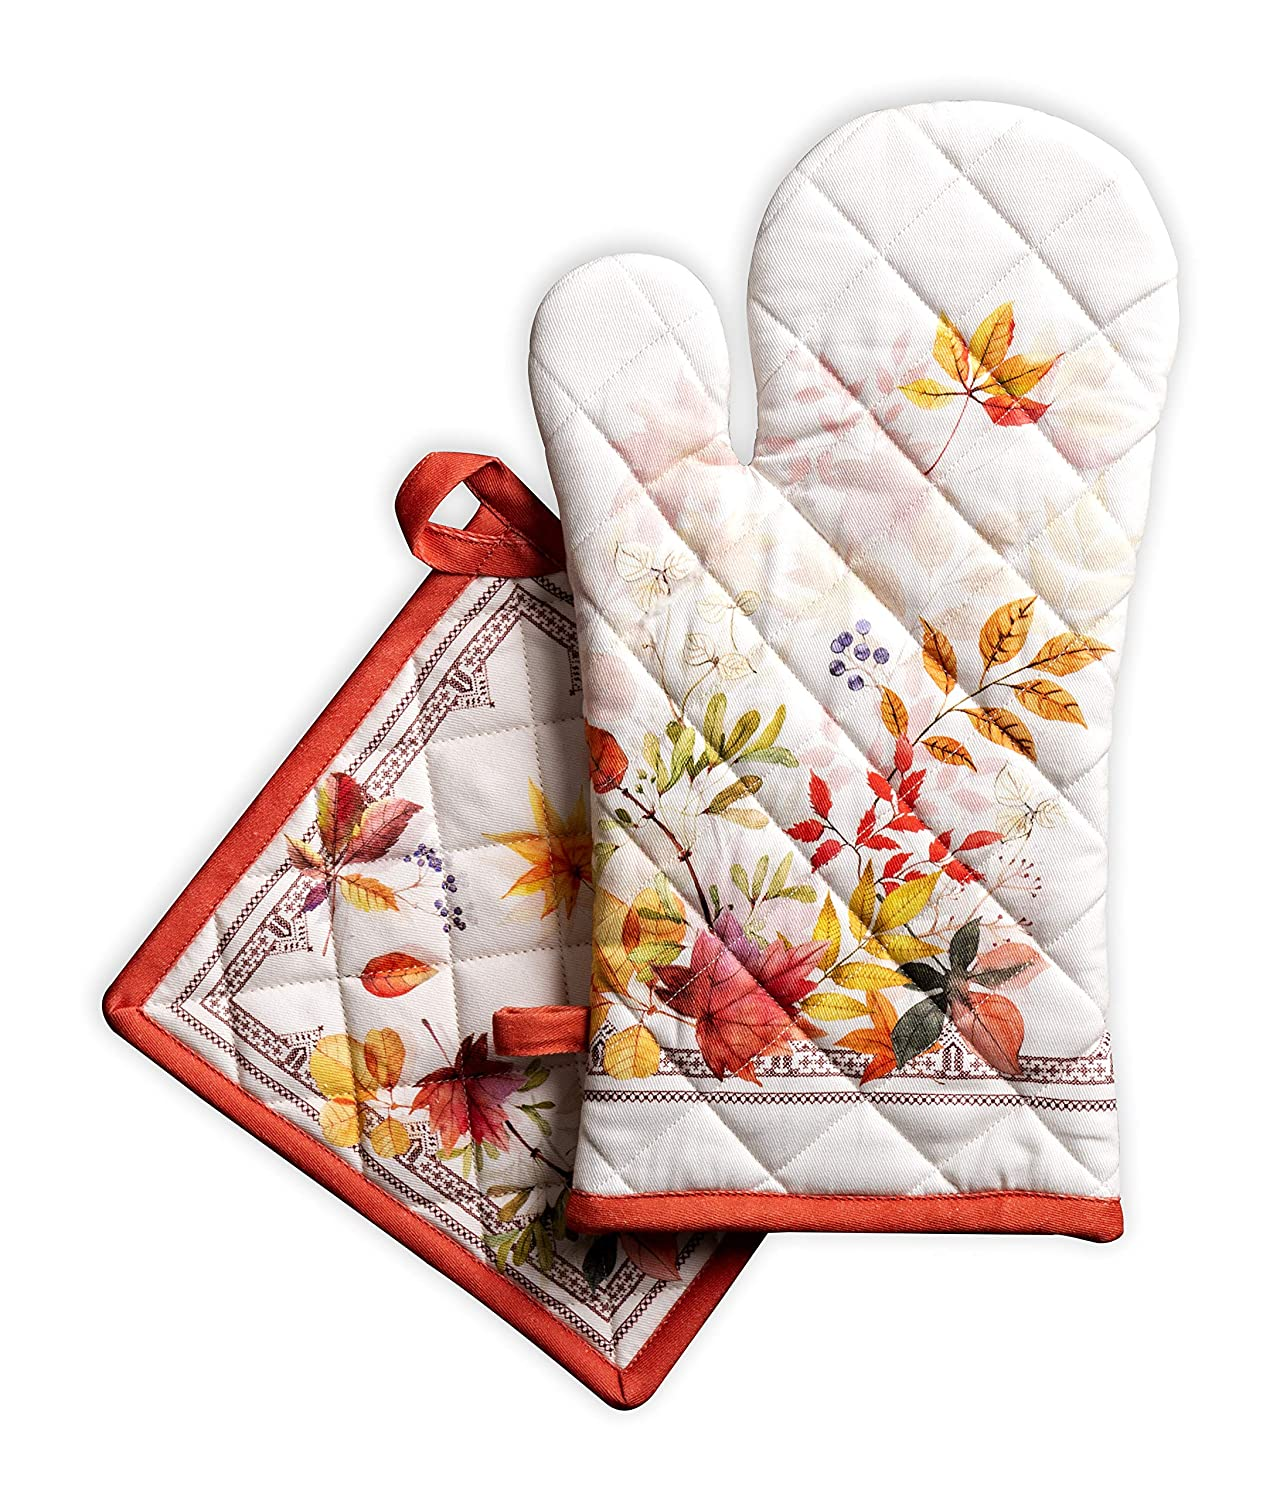 Maison d' Hermine Amarante 100% Cotton Set of Oven Mitt (7.5 Inch by 13 Inch) and Pot Holder (8 Inch by 8 Inch). Perfect for Thanksgiving and Christmas